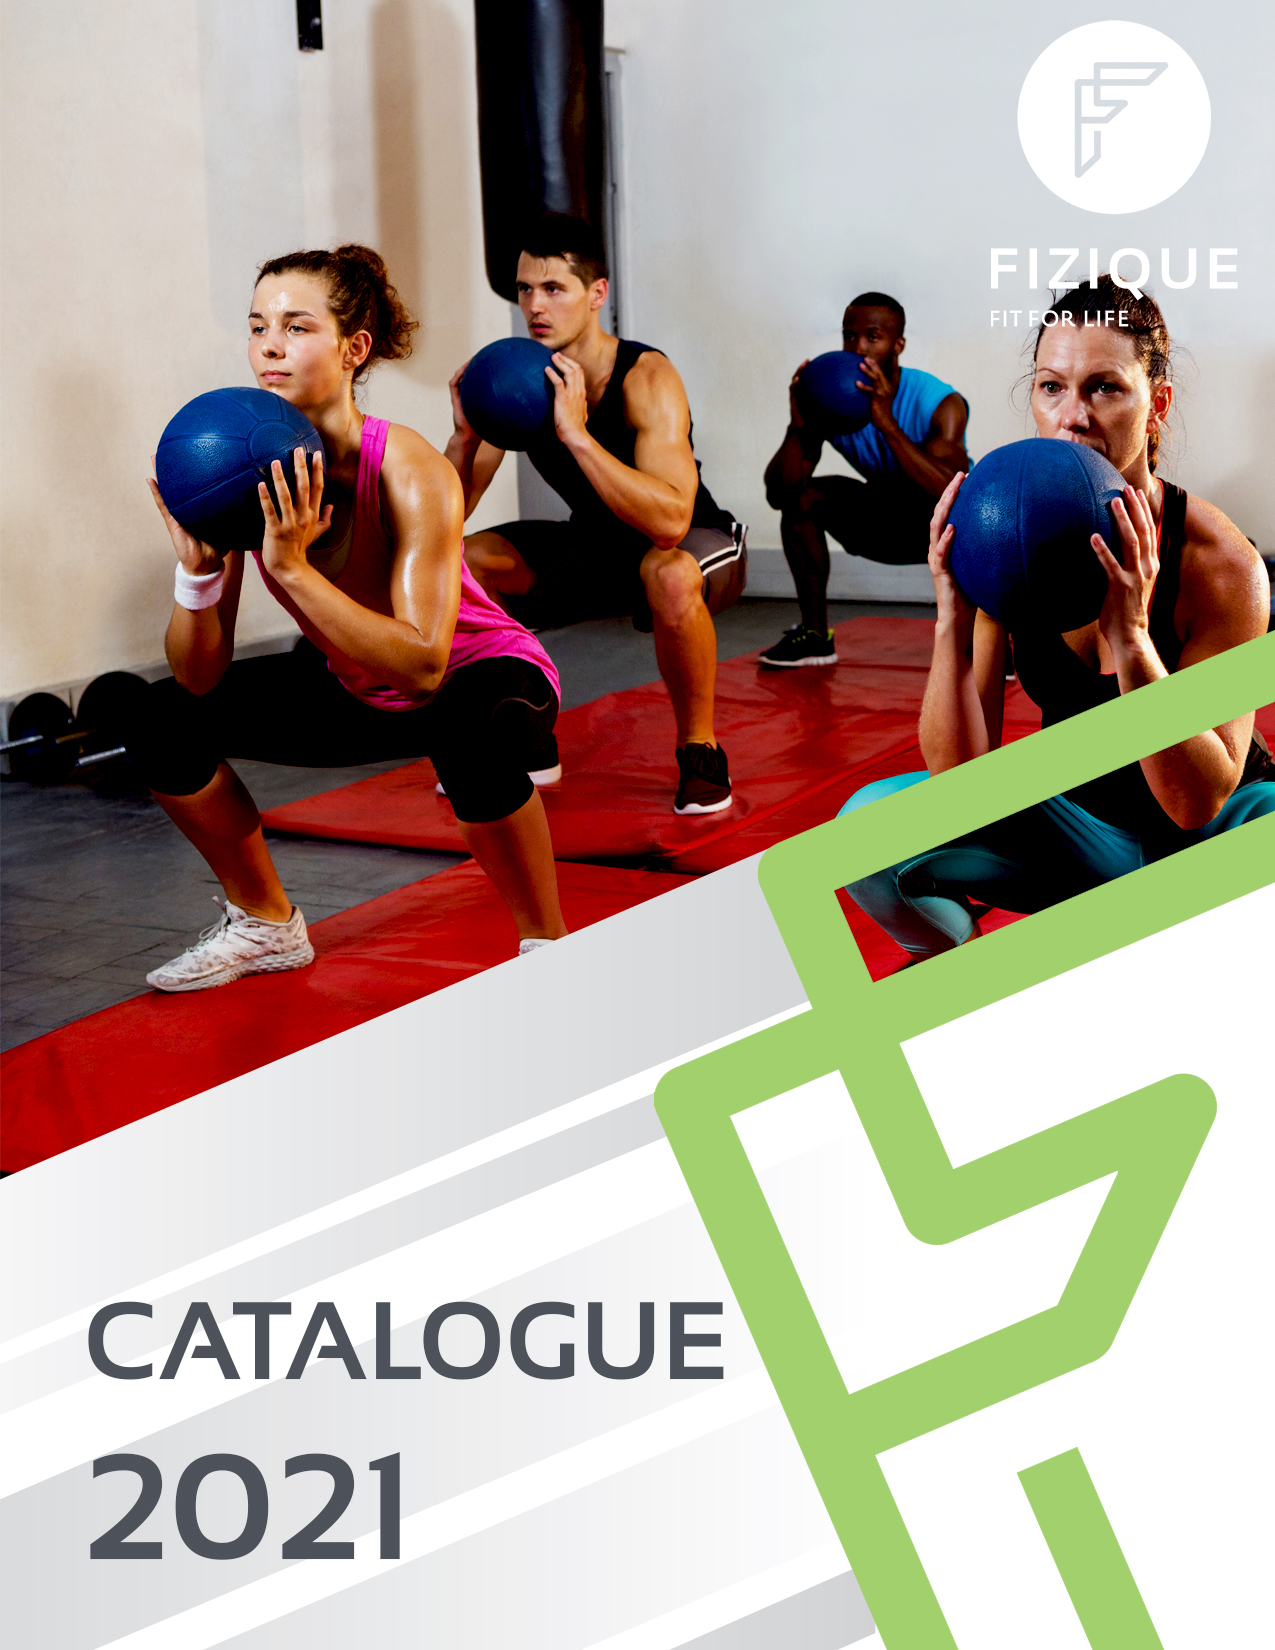 catlogue-2021-front-cover.jpg